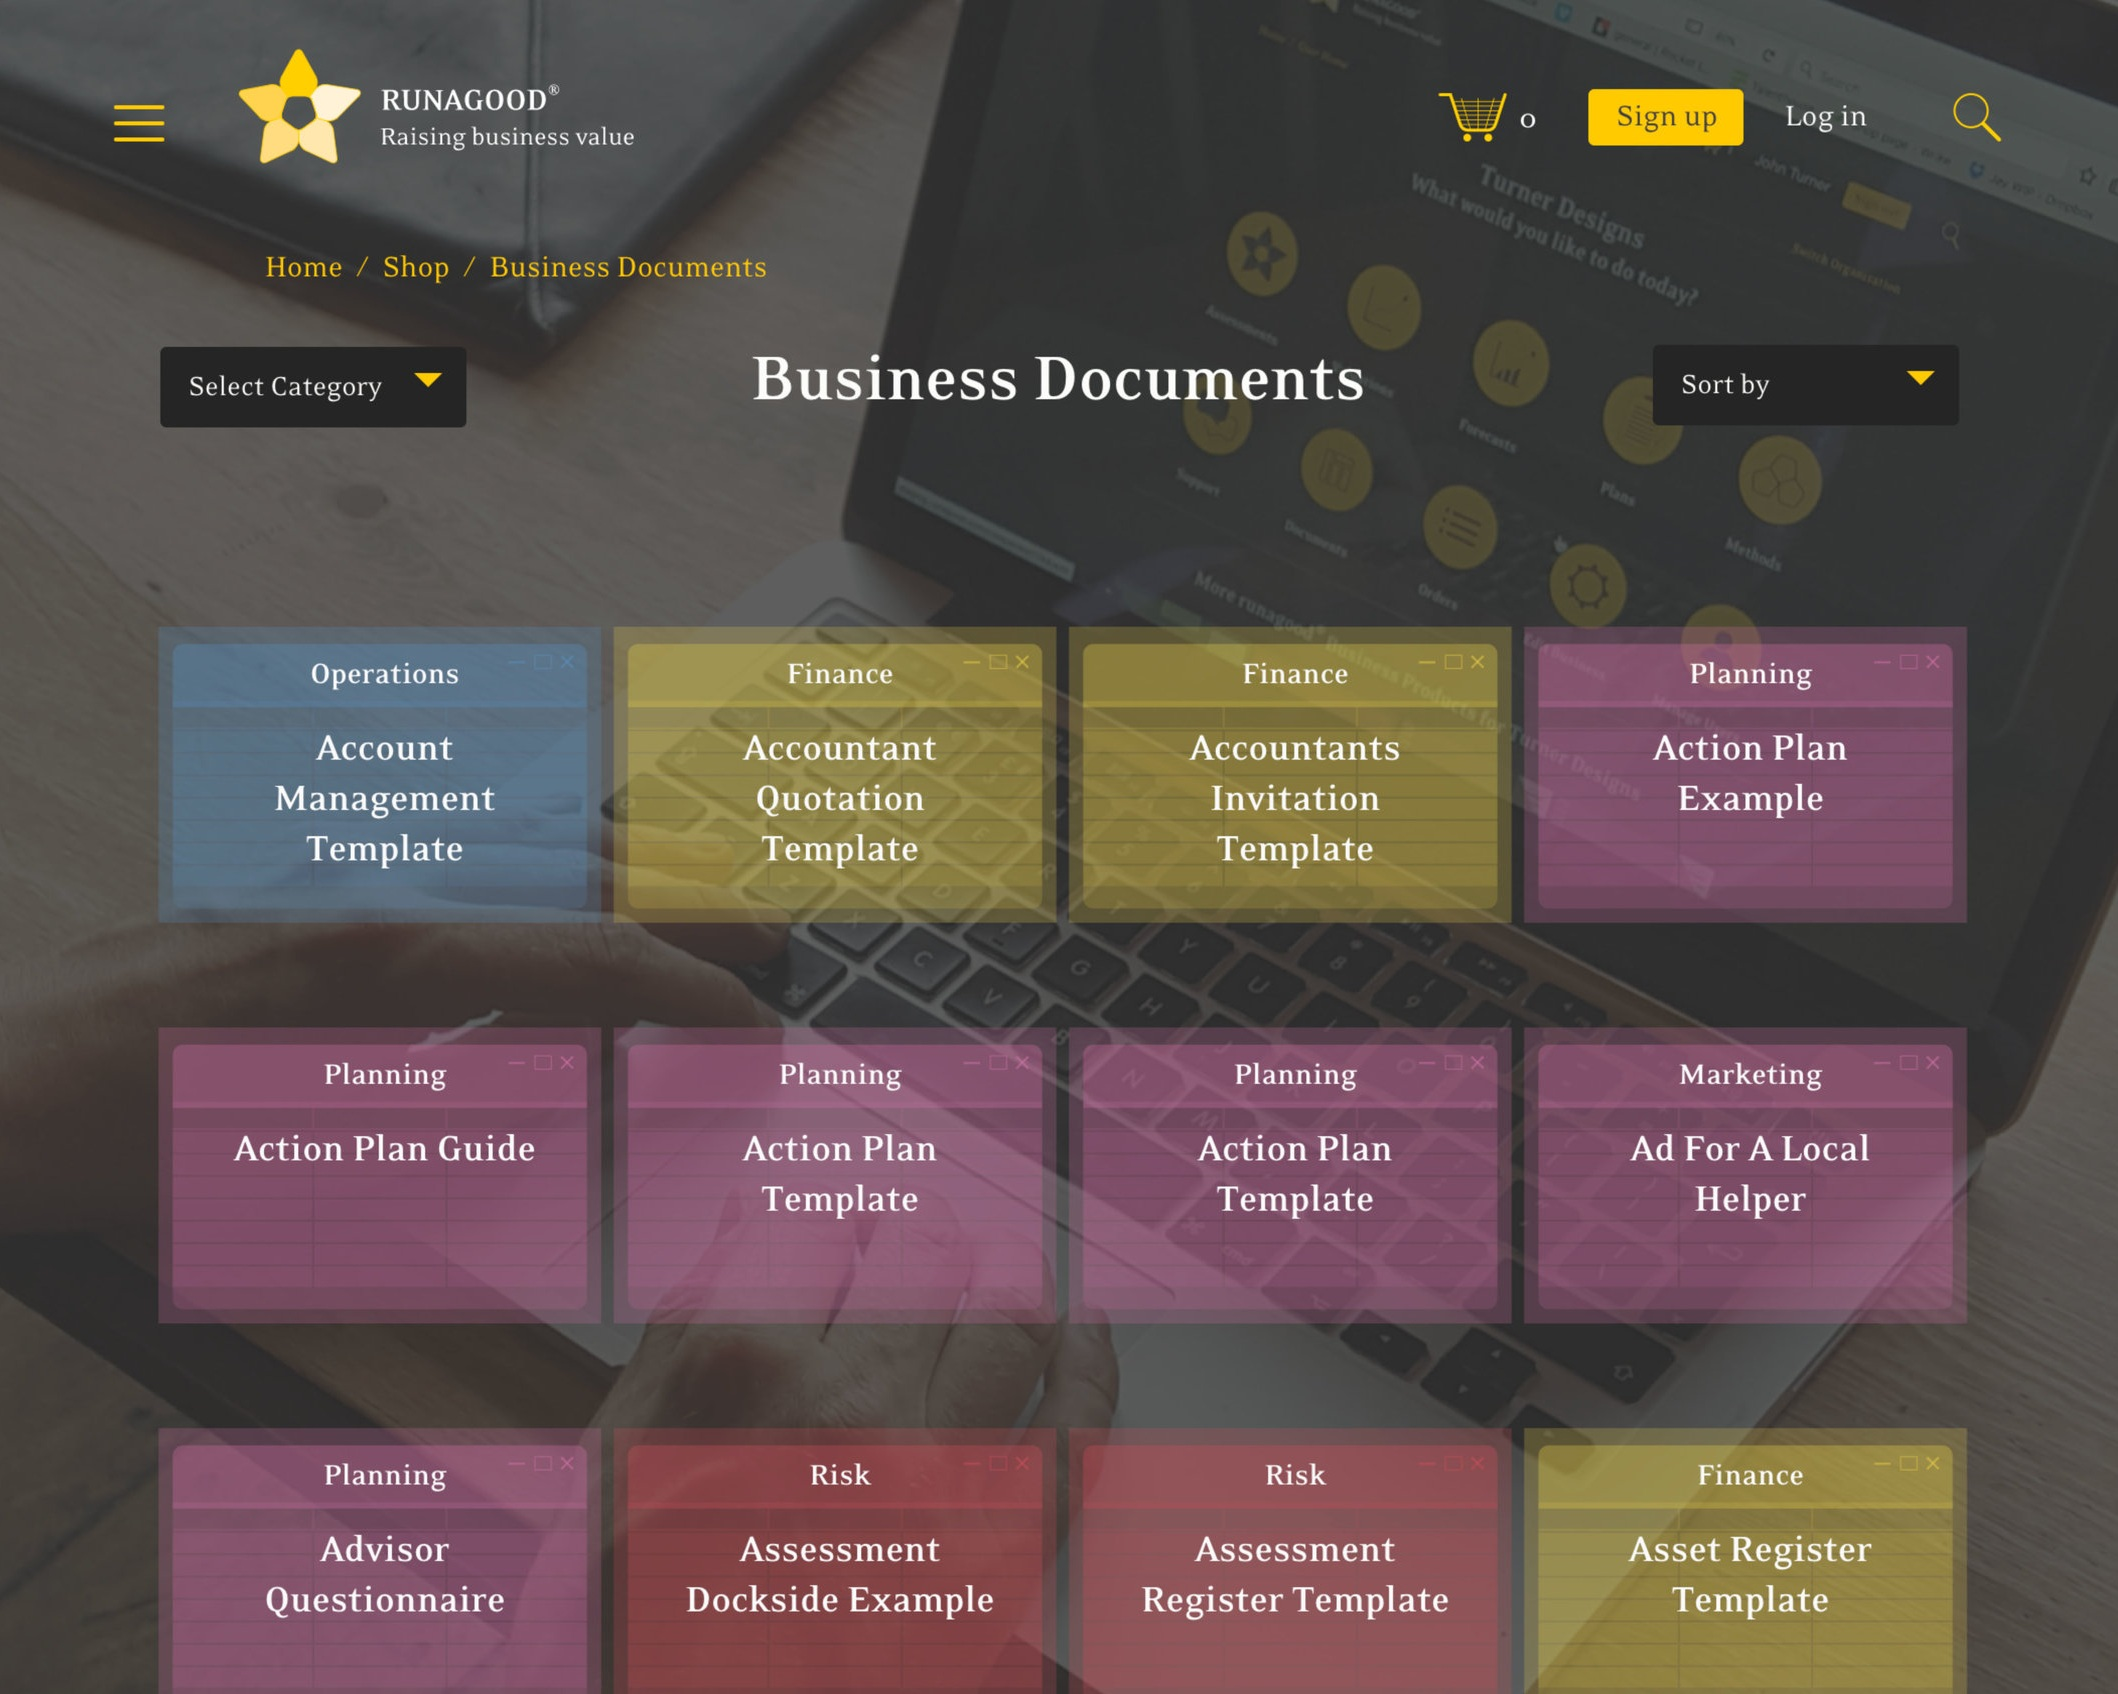 Business Documents - Hundreds of editable downloads to assist your project implementation